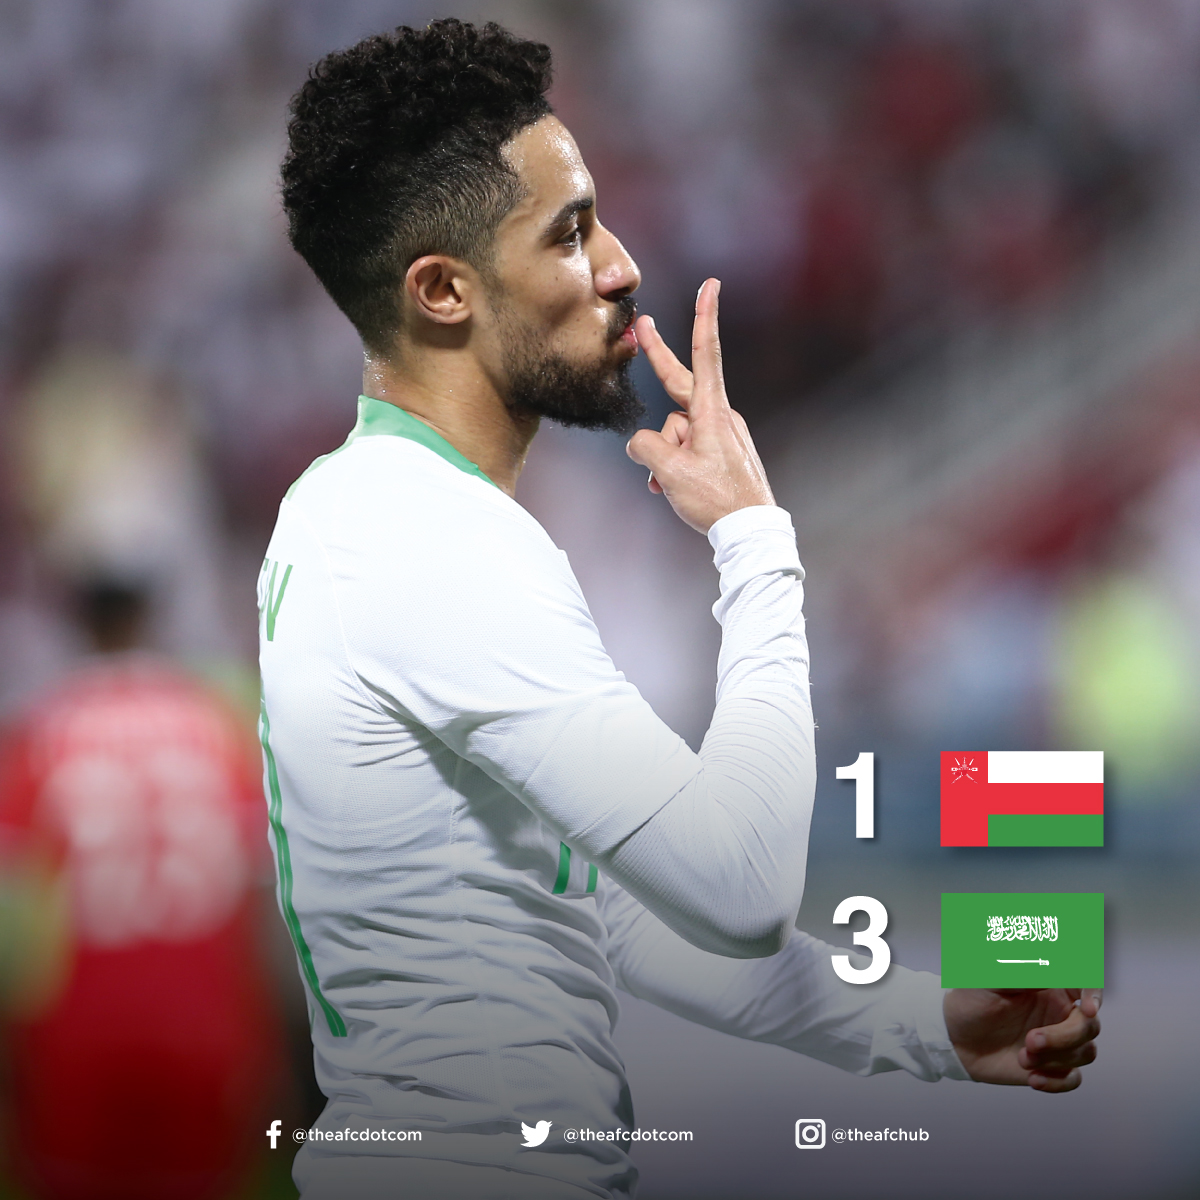 Saudi Arabia 🇸🇦 prevail over defending champions Oman 🇴🇲! Bahrain 🇧🇭 book semi-finals spot after defeating Kuwait 🇰🇼! #GulfCup